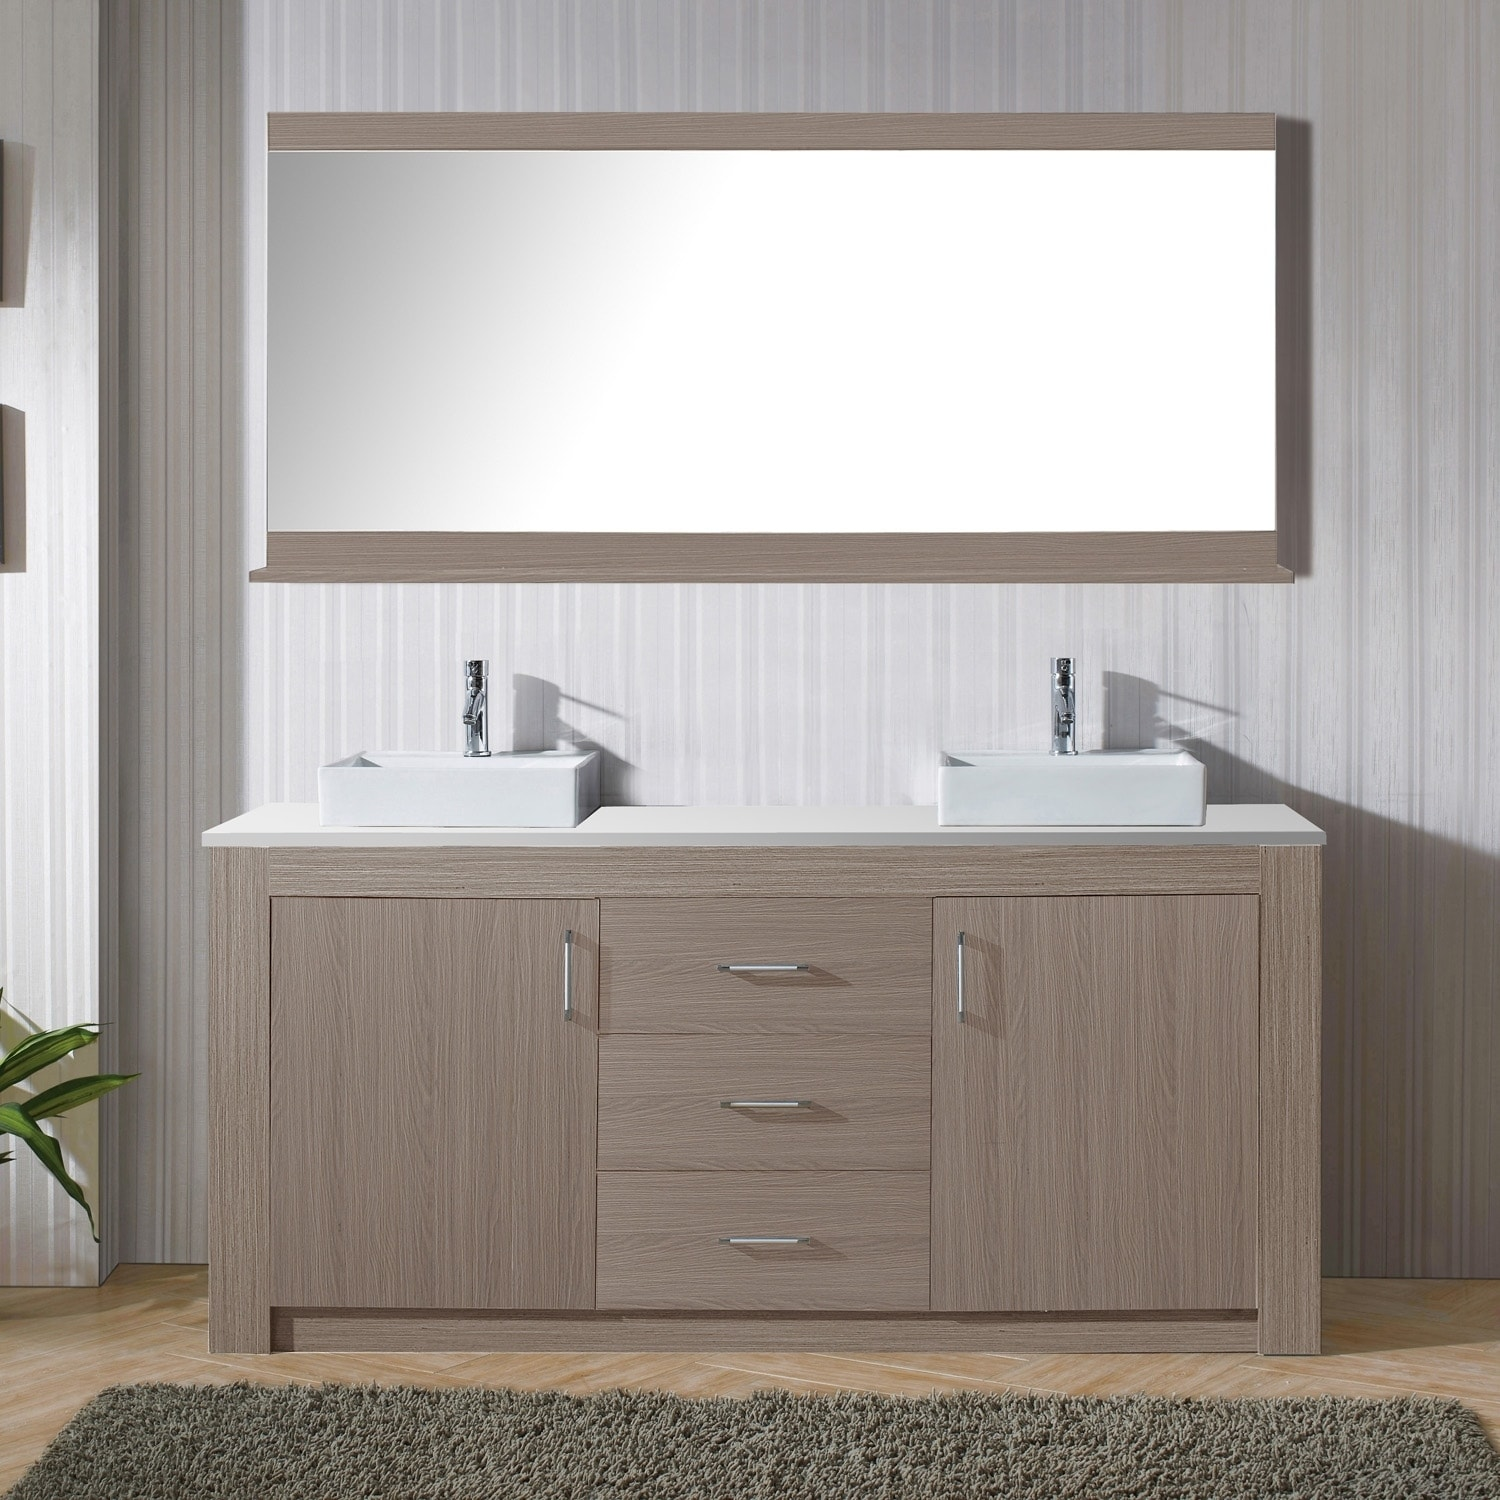 Virtu USA Tavian 72-inch Double Bathroom Vanity Set with Faucet and ...